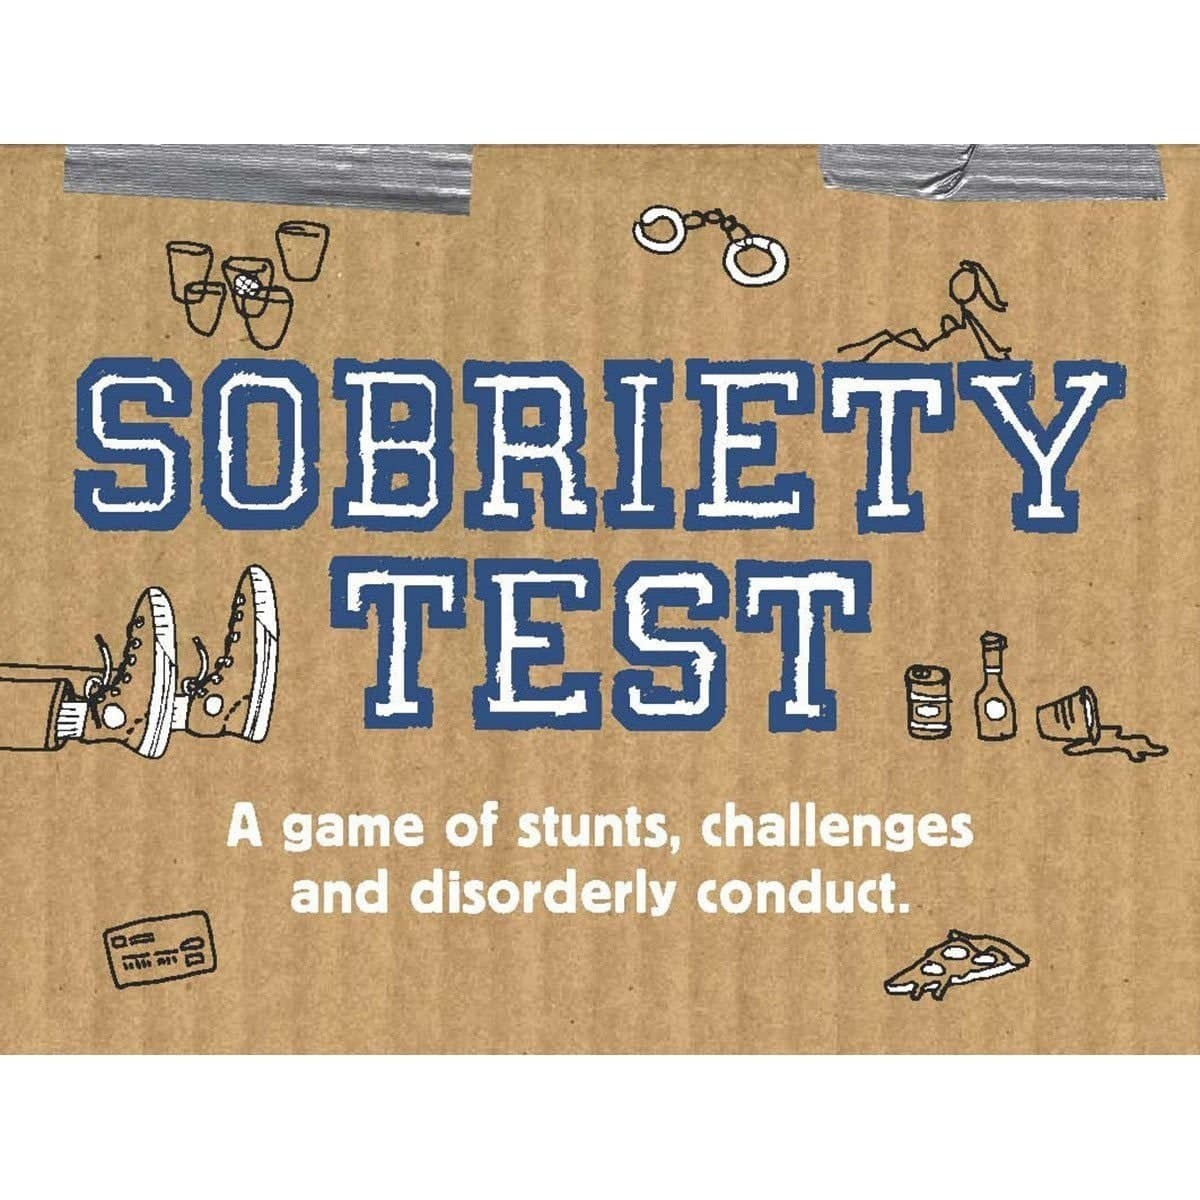 Sobriety Test - The Game